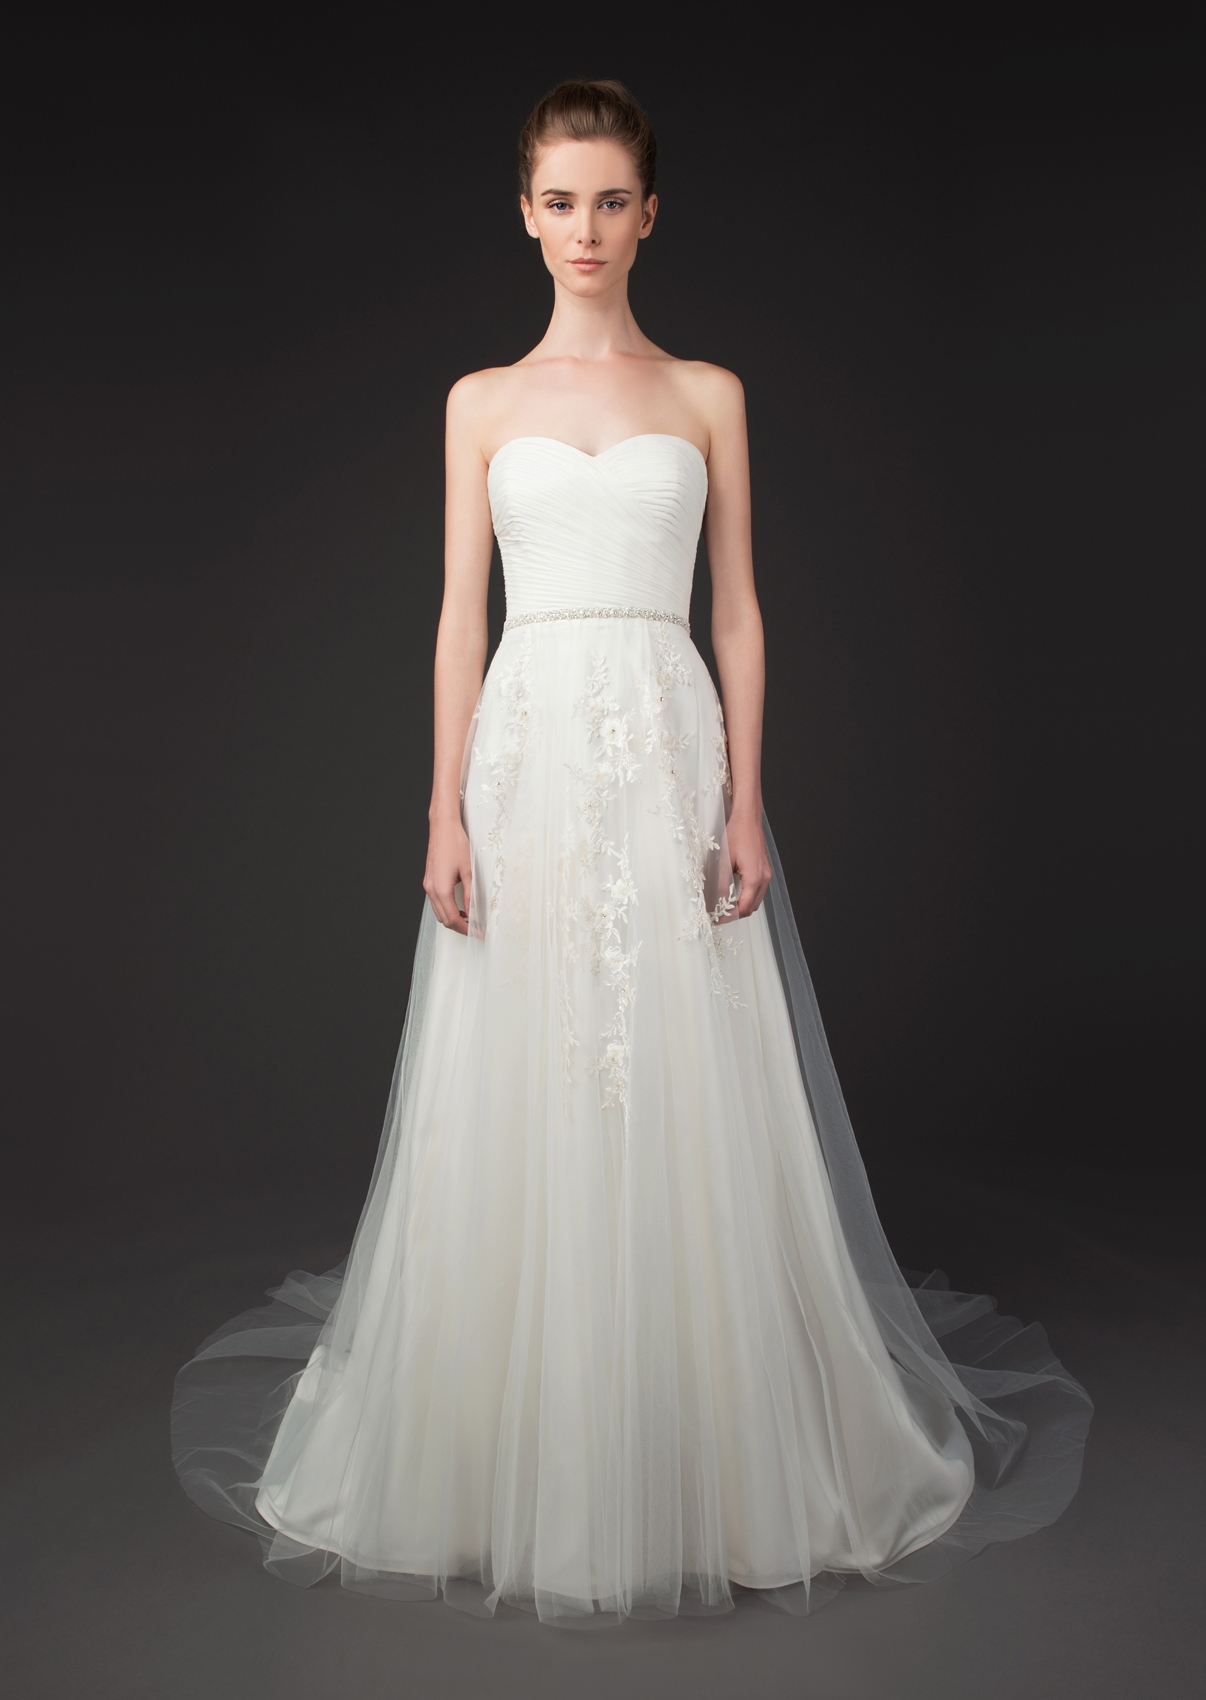 winnie-couture-wedding-dresses-fall-2014-diamond-label-collection-31-01202014